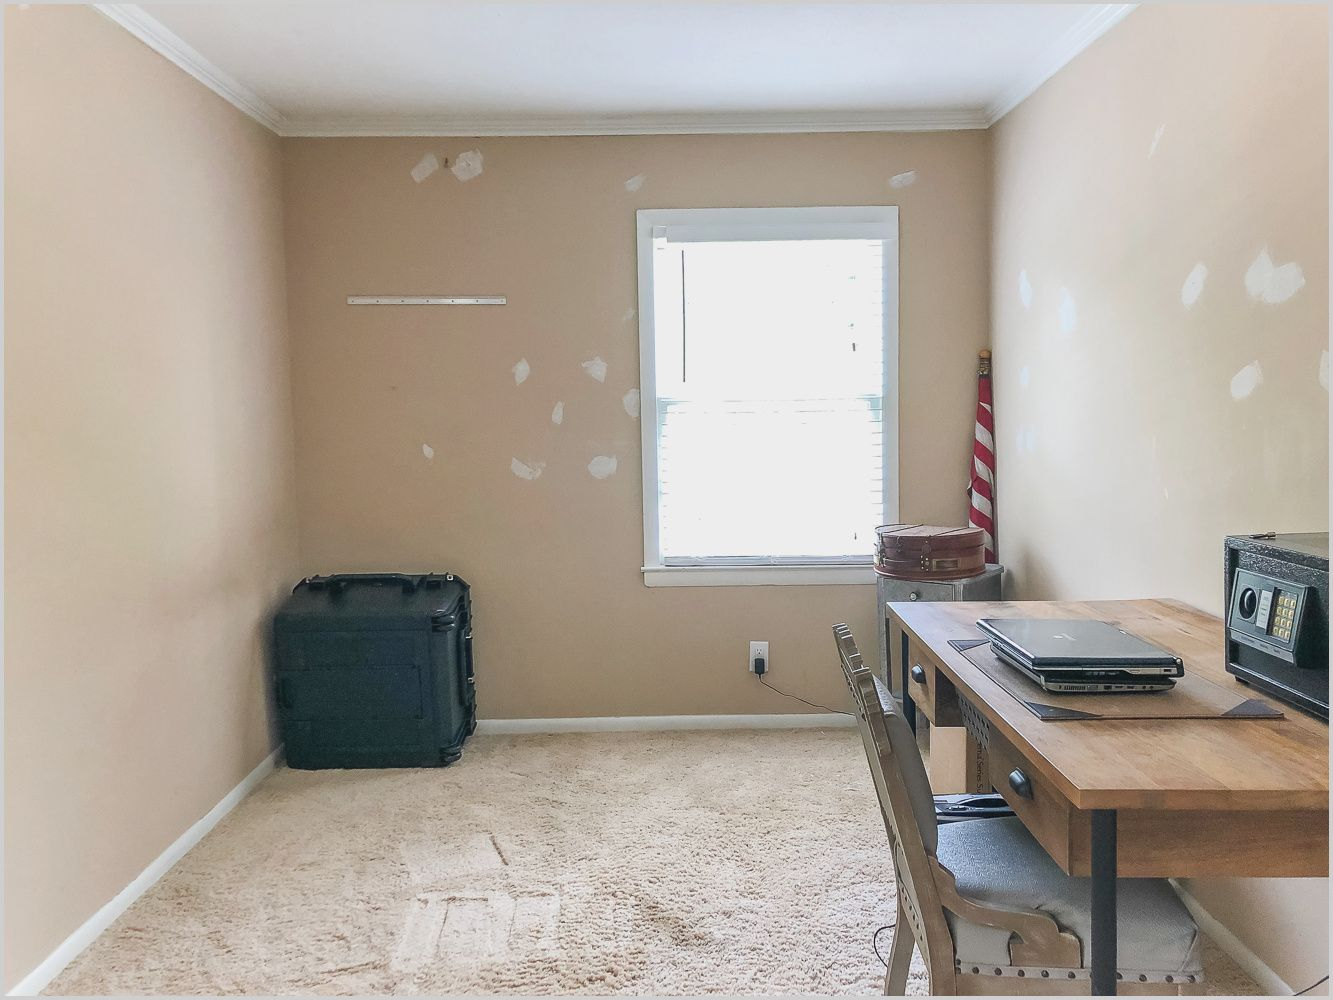 Small Empty Bedroom With One Window In 2020 Guest Bedroom Makeover Small Guest Bedroom Small Bedroom Layout